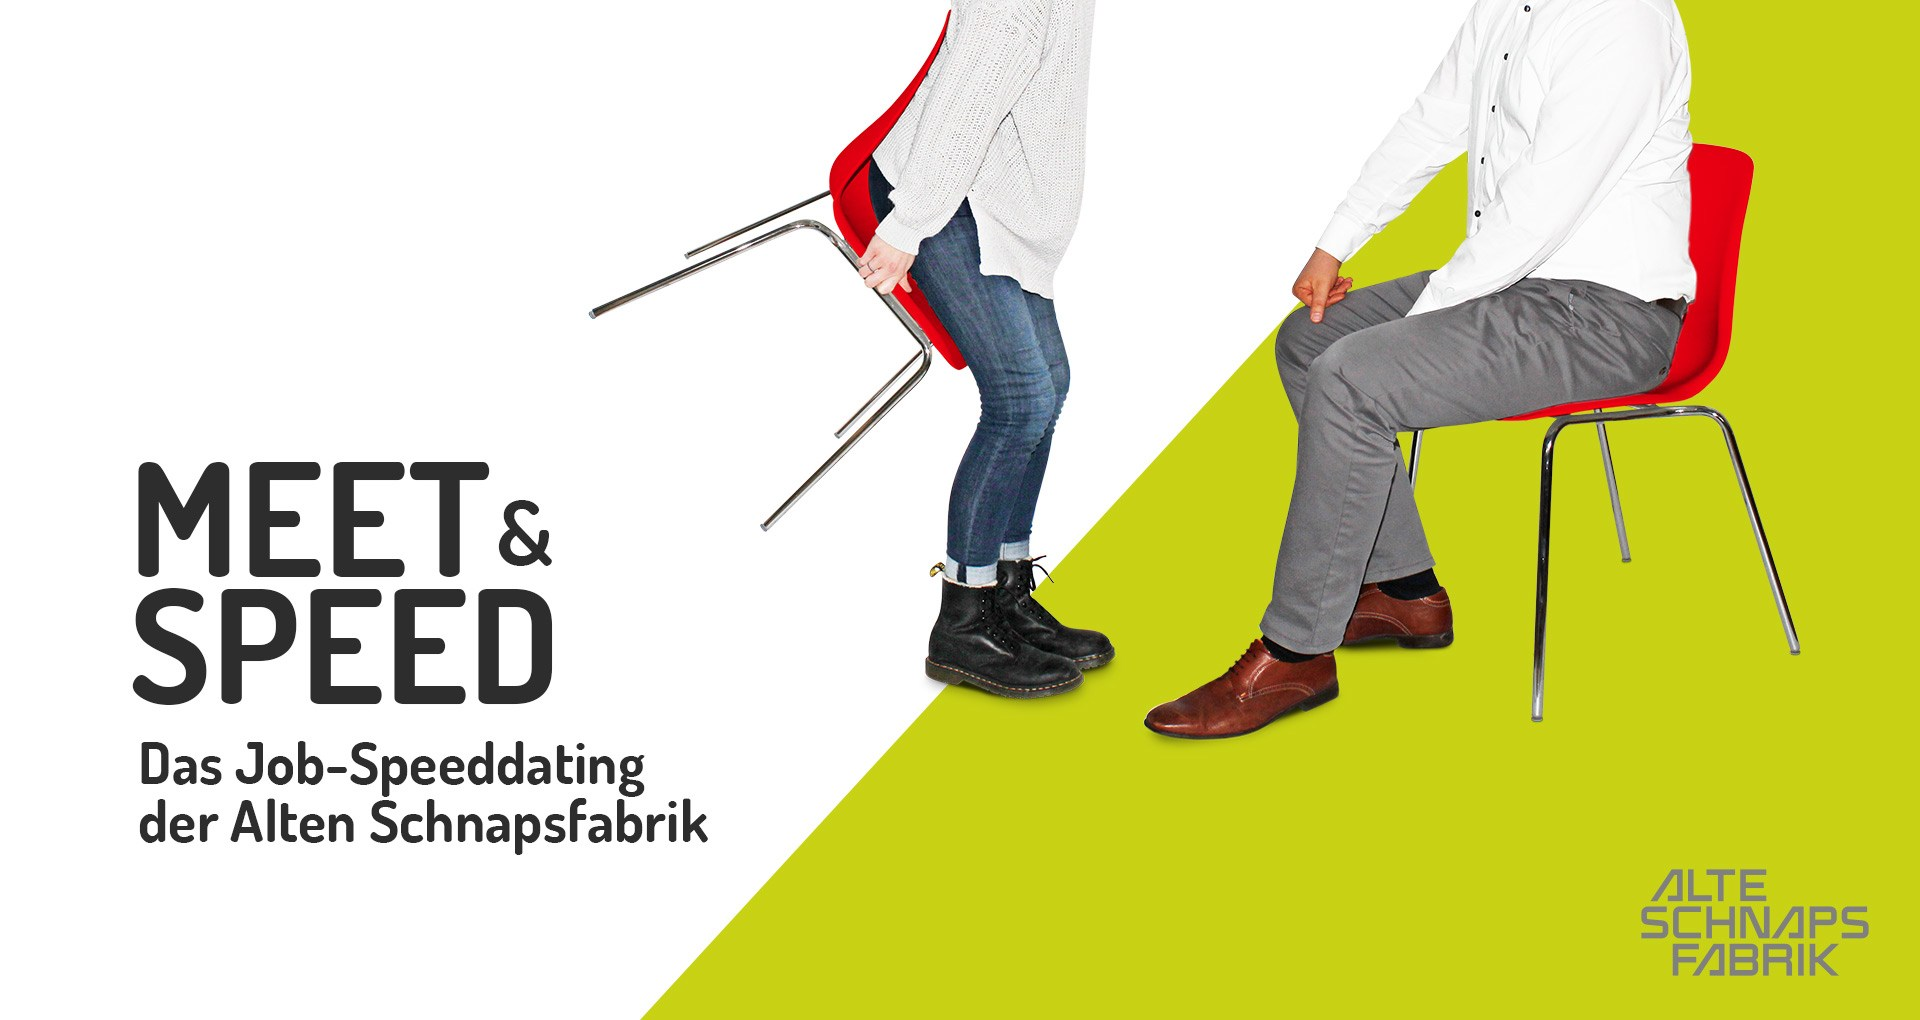 Meet & Speed – Das Job-Speeddating der Alten Schnapsfabrik